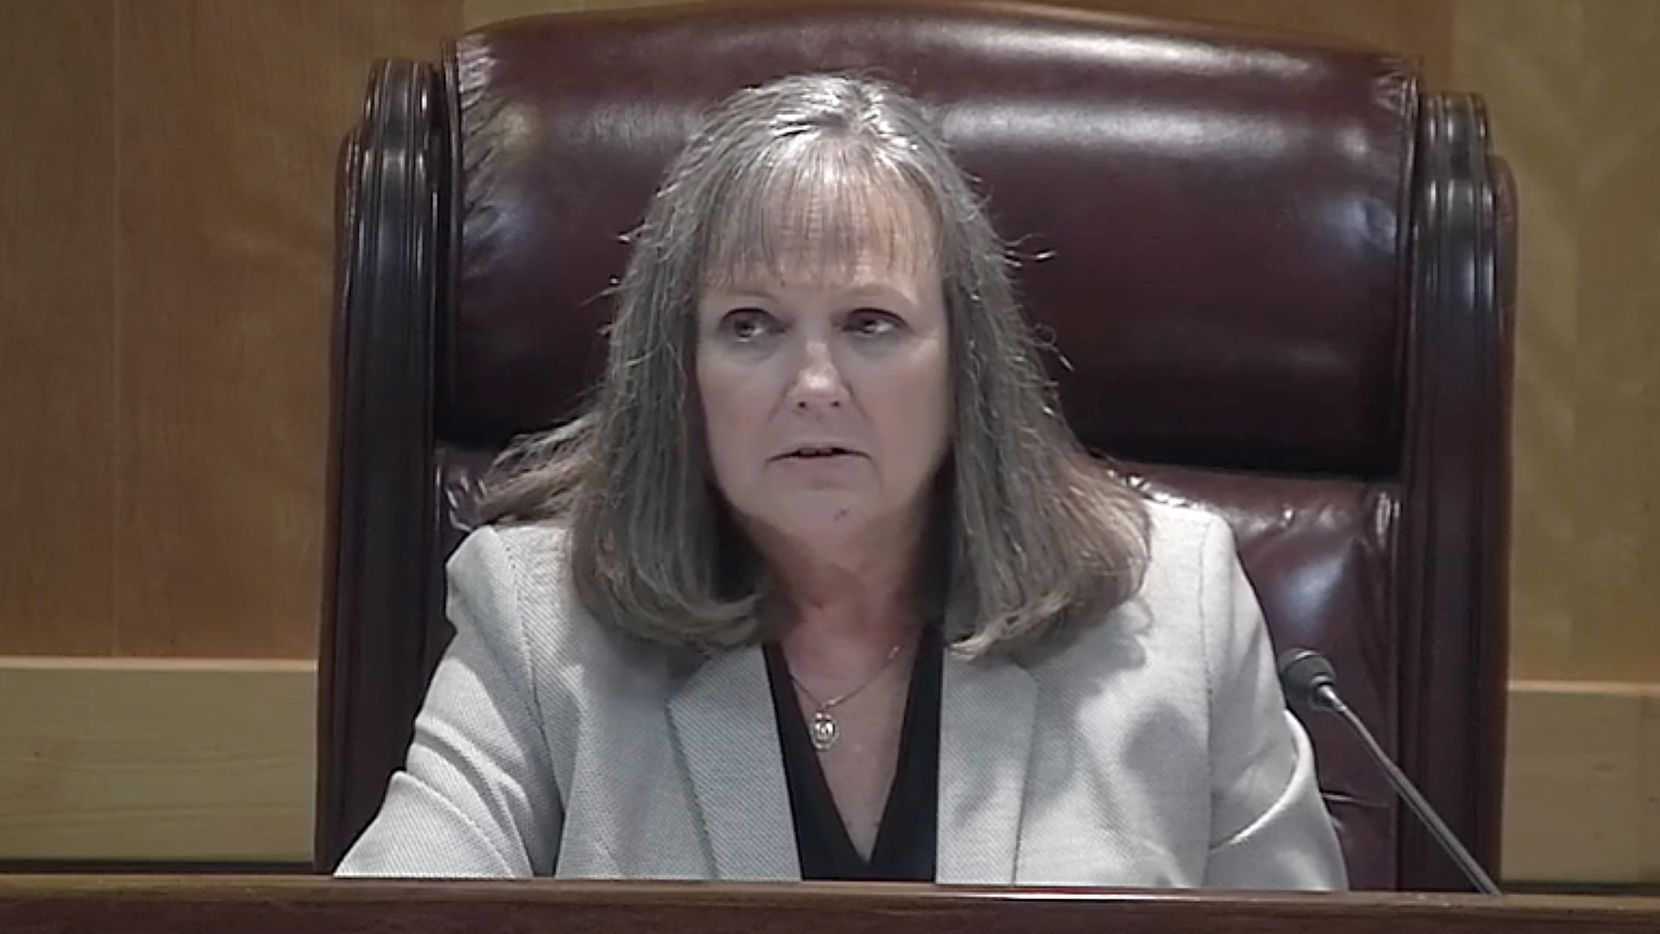 Public Utility Commission Chairman DeAnn Walker made angry comments about her staff at a July 2020 public meeting and scolded them in public. Several days later, the 10-person Oversight & Enforcement division was permanently shut down.